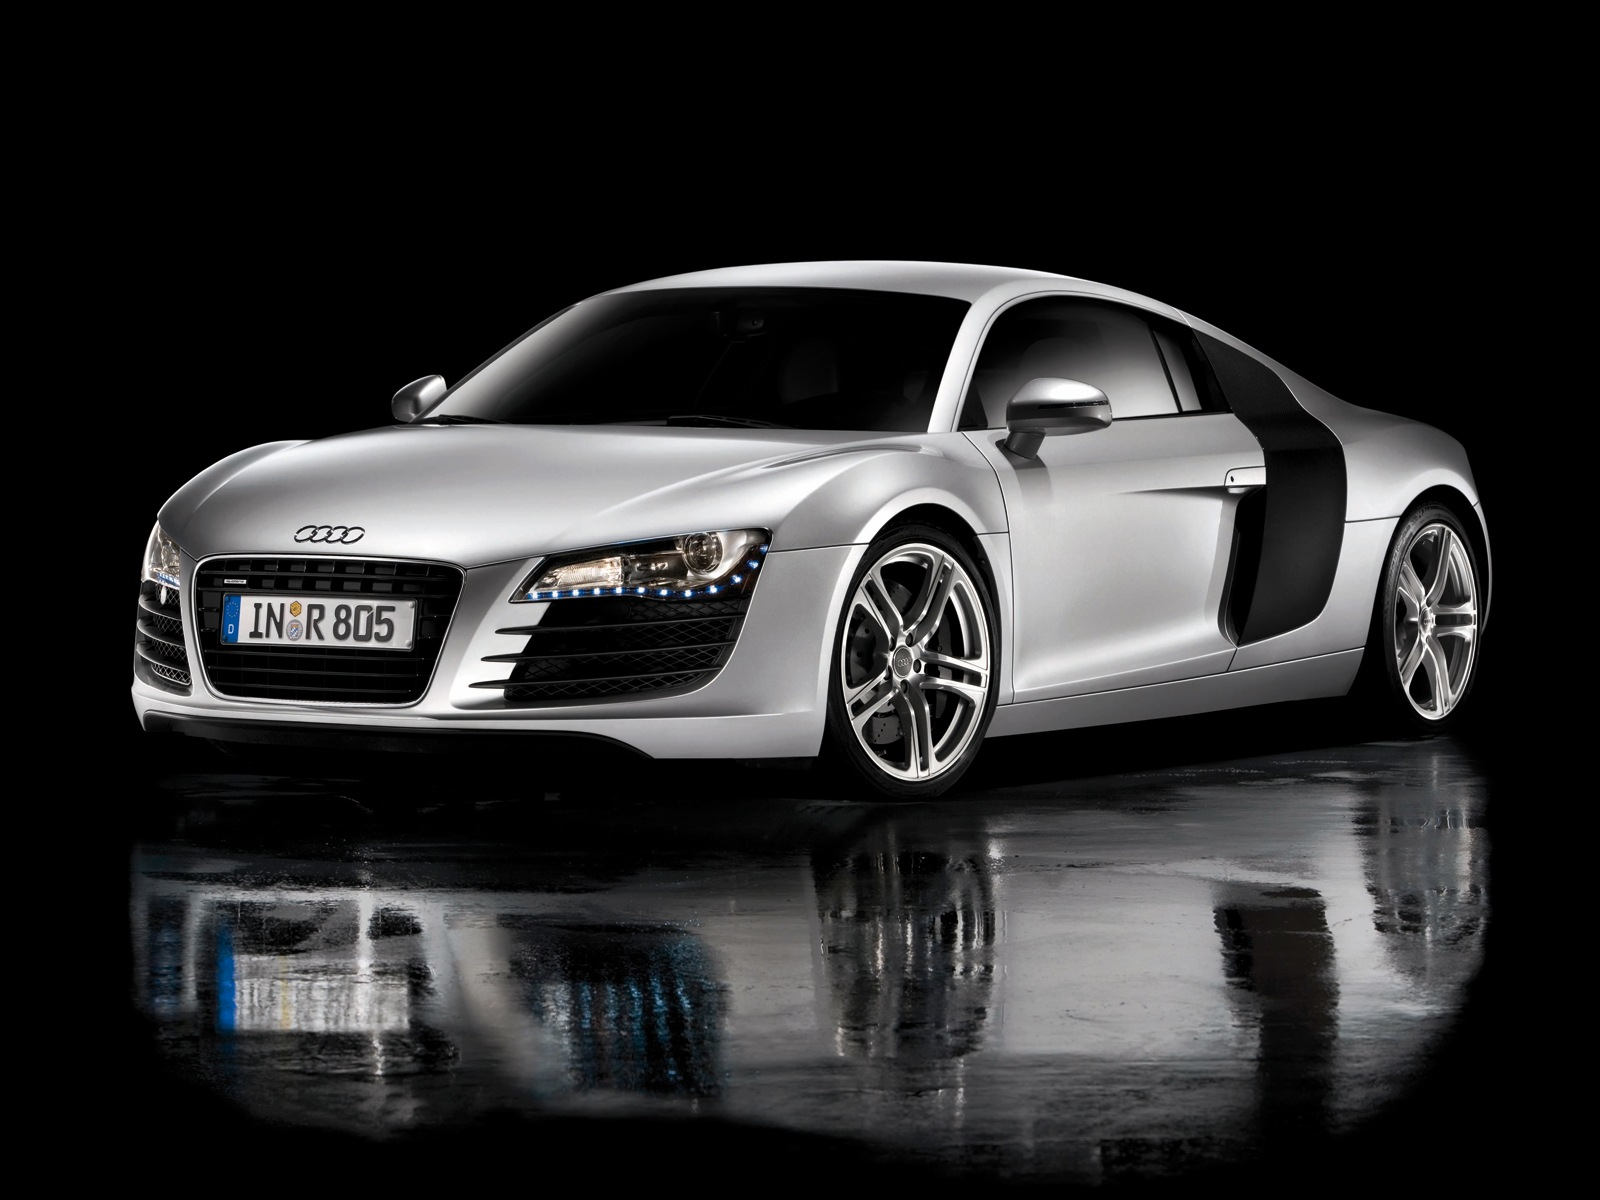 AUDI S8 HD Car Wallpapers for Android, Desktop, Iphone, Tablet 10 Wallpaper